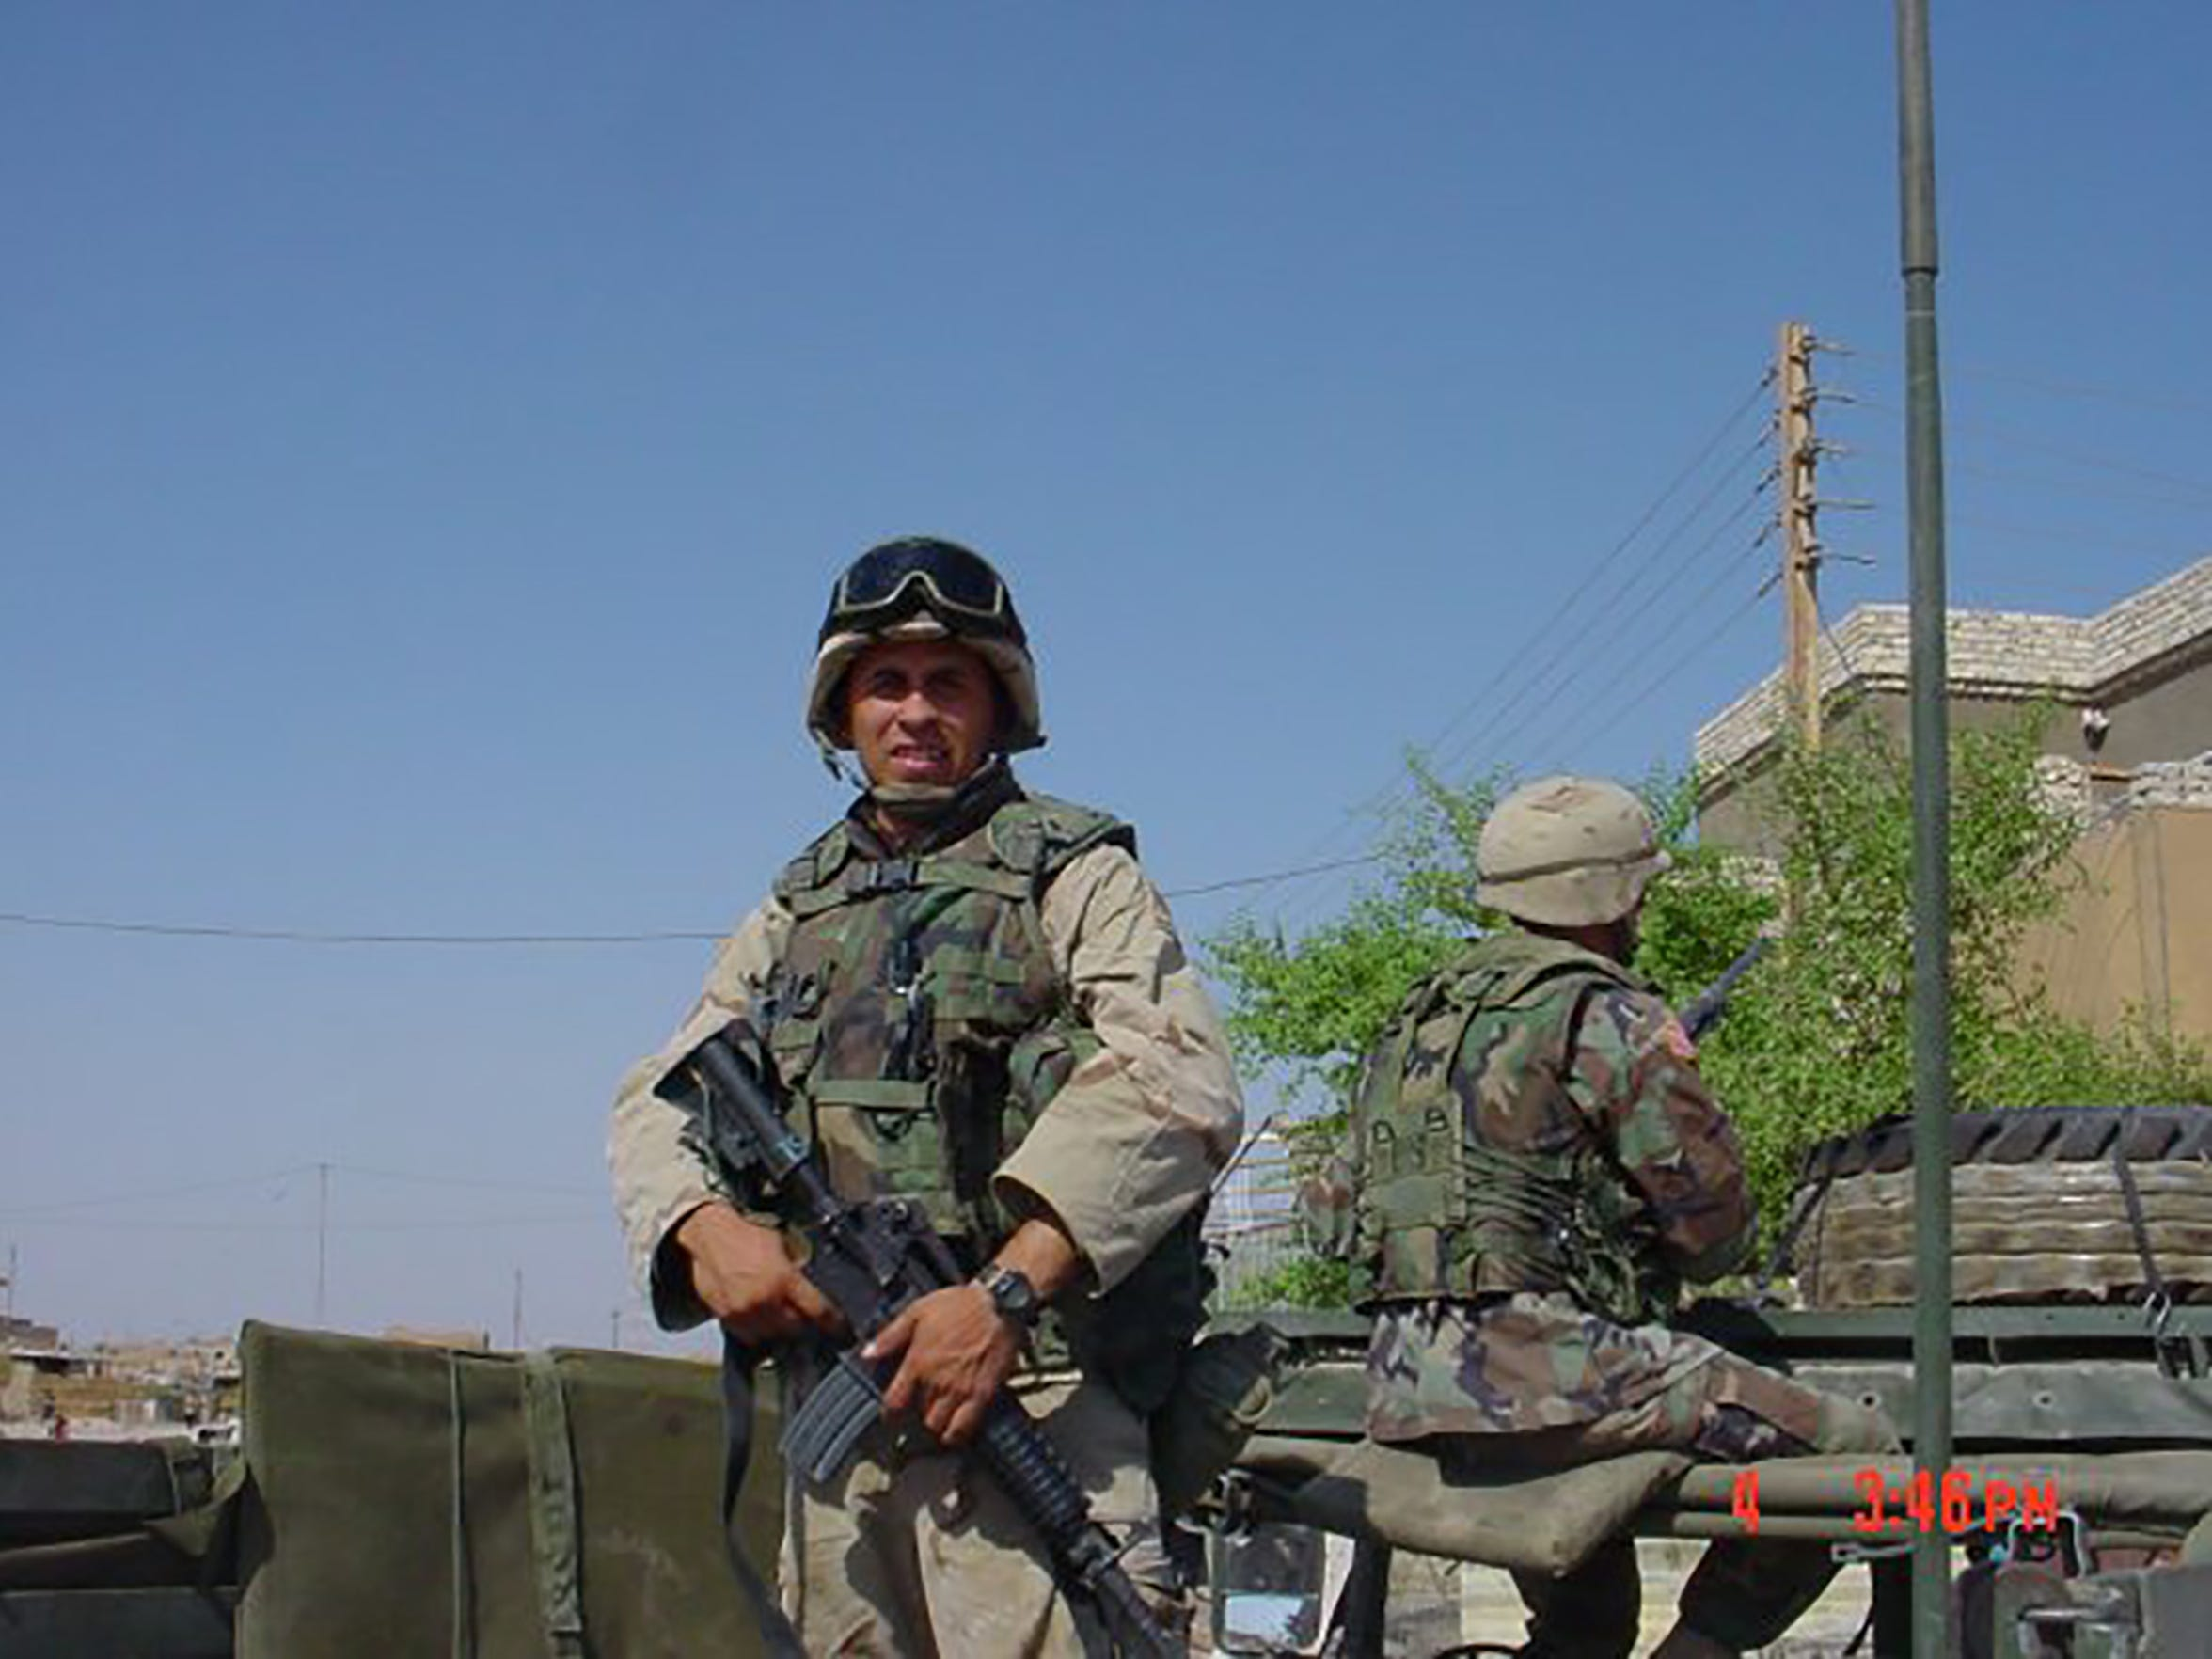 Jeff Bohn served as an Army medic in the Iraq War. He spend eight months patrolling the city and treating the injured.